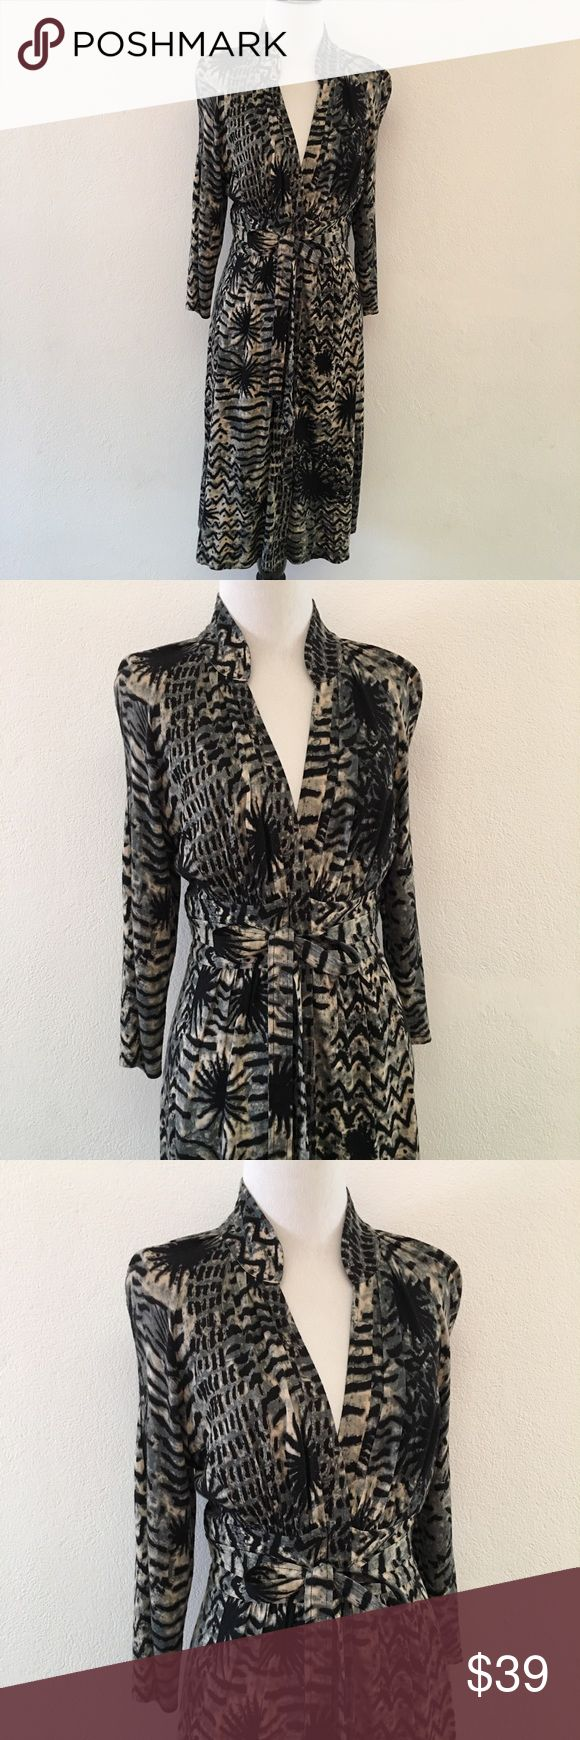 """Tracy Reese Animal Print Long Sleeve Dress size 4 Pre-owned authentic Tracy Reese Animal Print Long Sleeve Dress size 4. Armpit to armpit is 14"""" inches. Waist is 13"""" inches laying flat. Collar to hem is 42"""" inches. Shoulder to cuff is 18"""" inches. Dress has a front zipper and a belt that ties in front. Great structure. Please look at pictures for better reference. Happy Shopping! Tracy Reese Dresses Long Sleeve"""